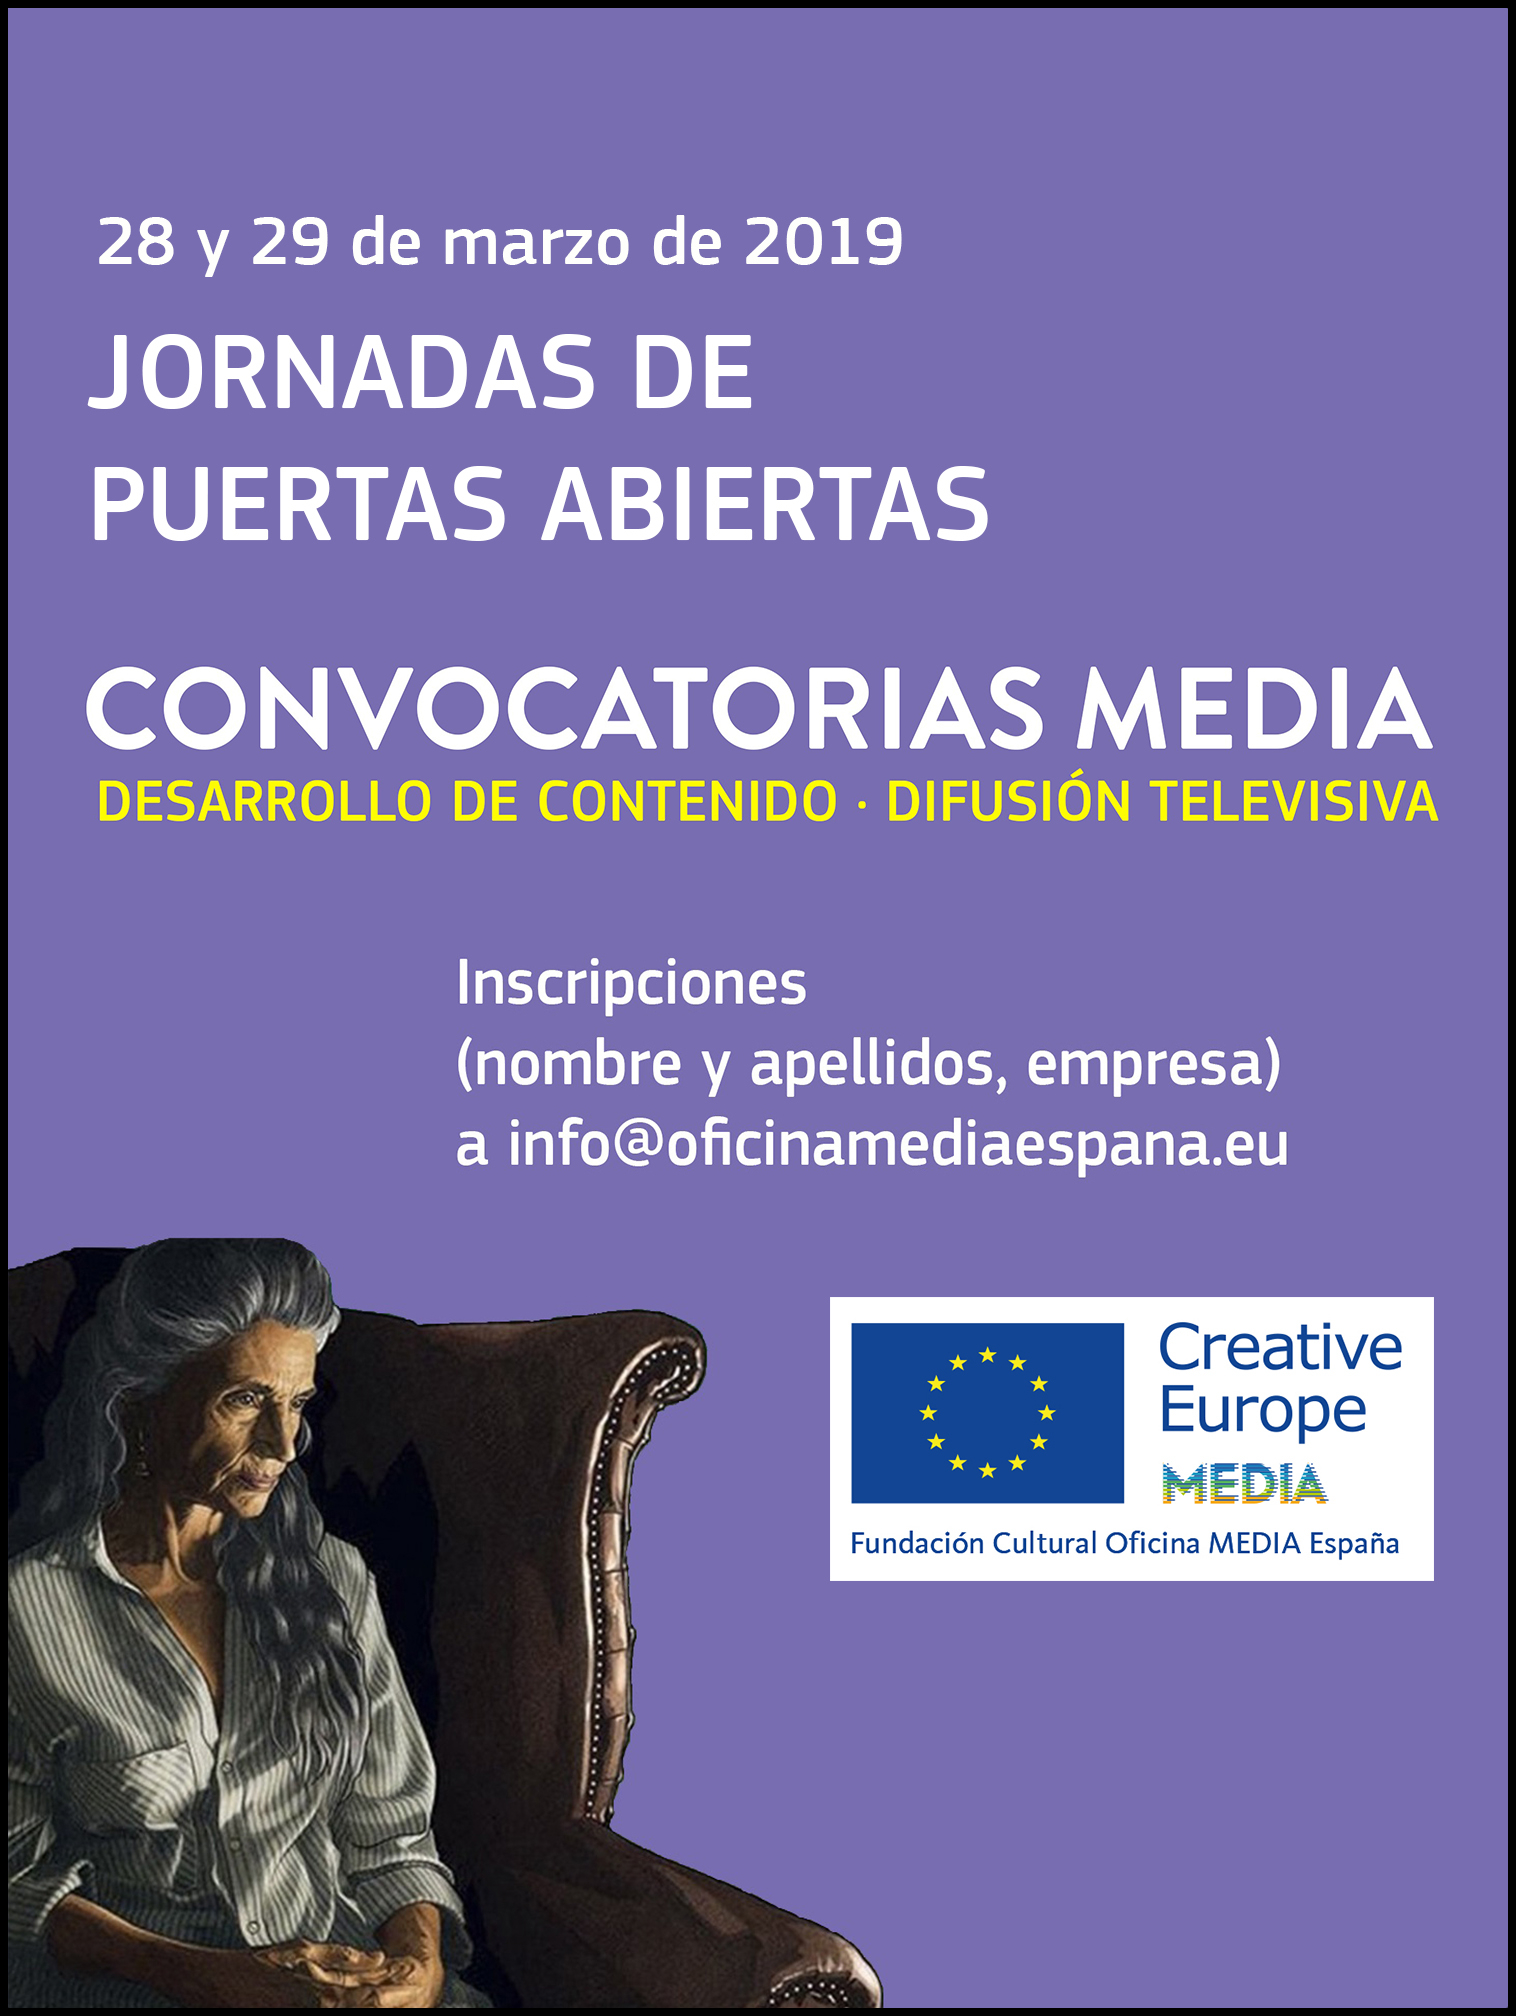 JornadaspuertasabiertasconvocatoriasMEDIA2019Interior